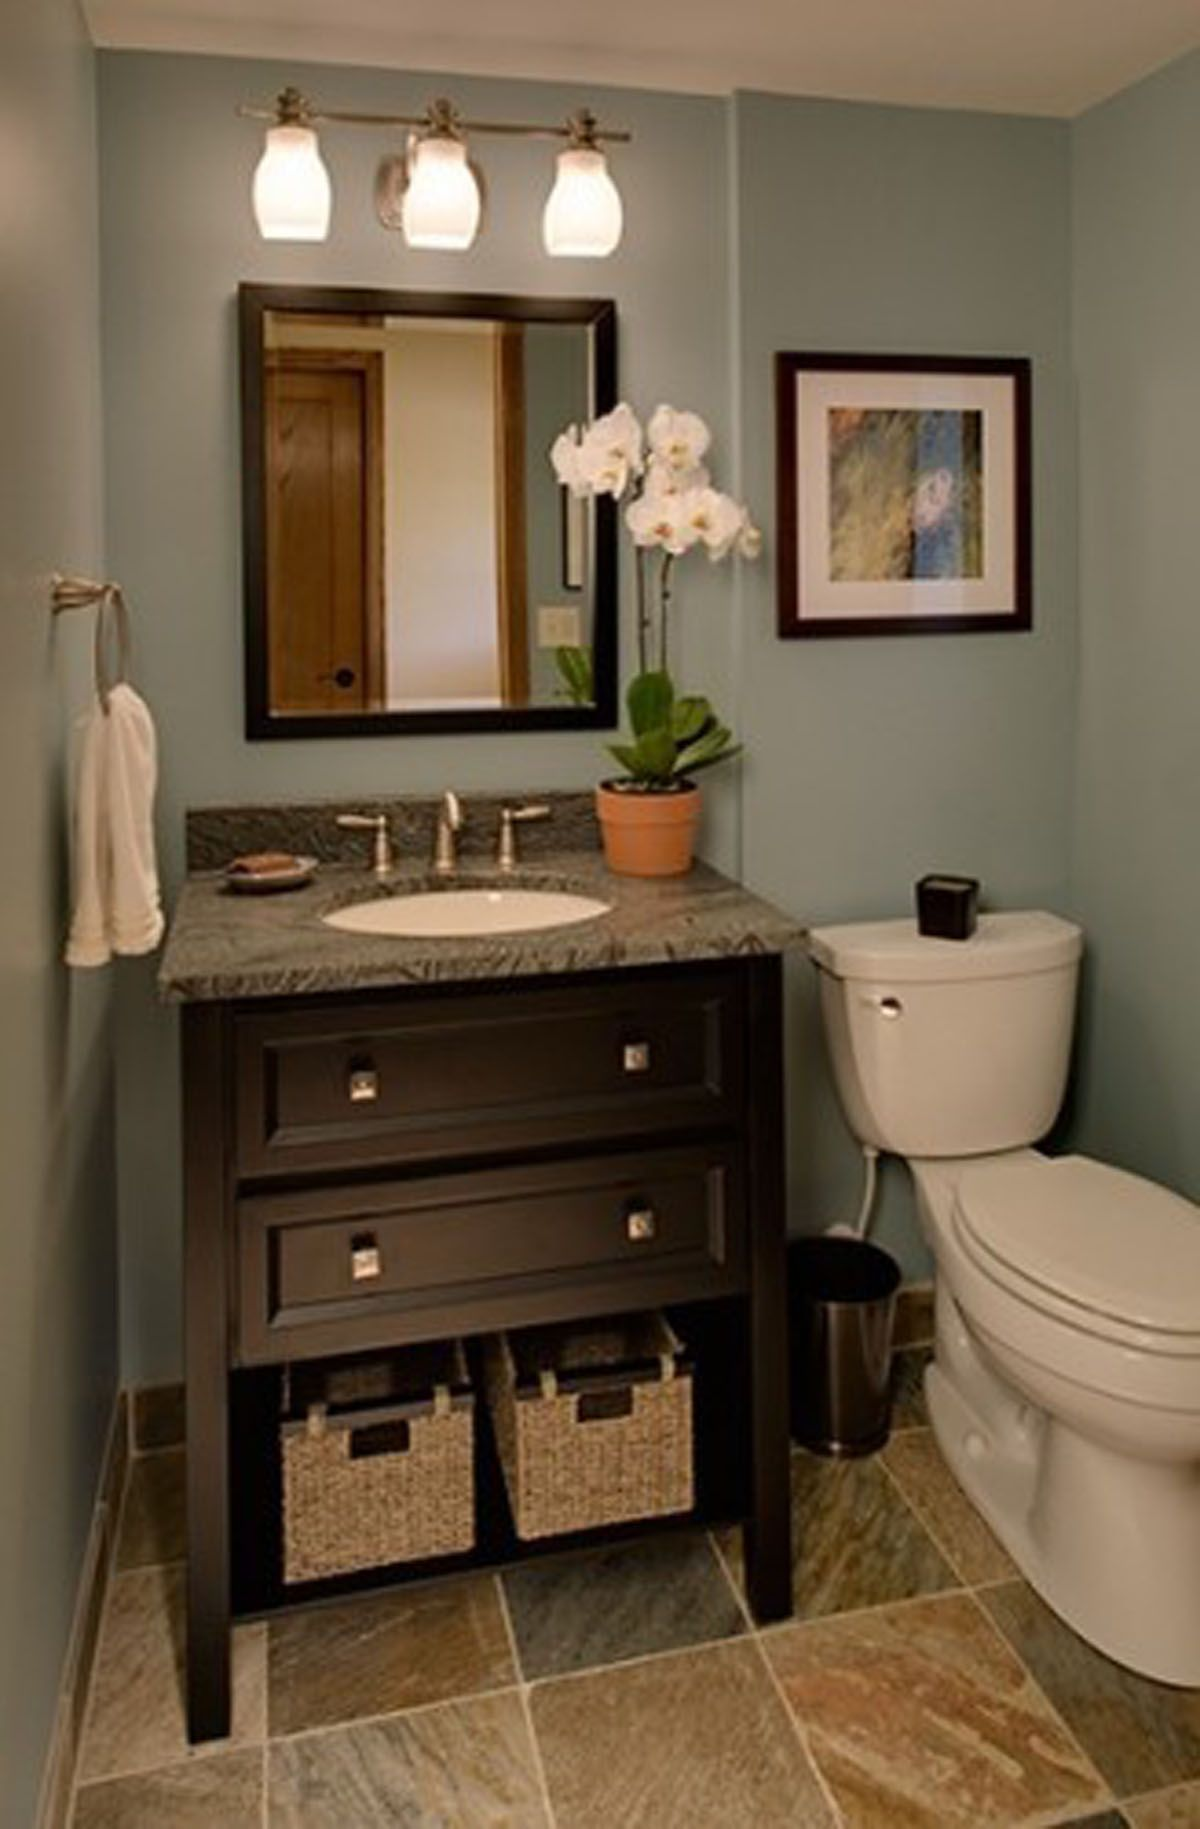 Half bathroom decorating ideas design ideas decors for Half bath remodel ideas